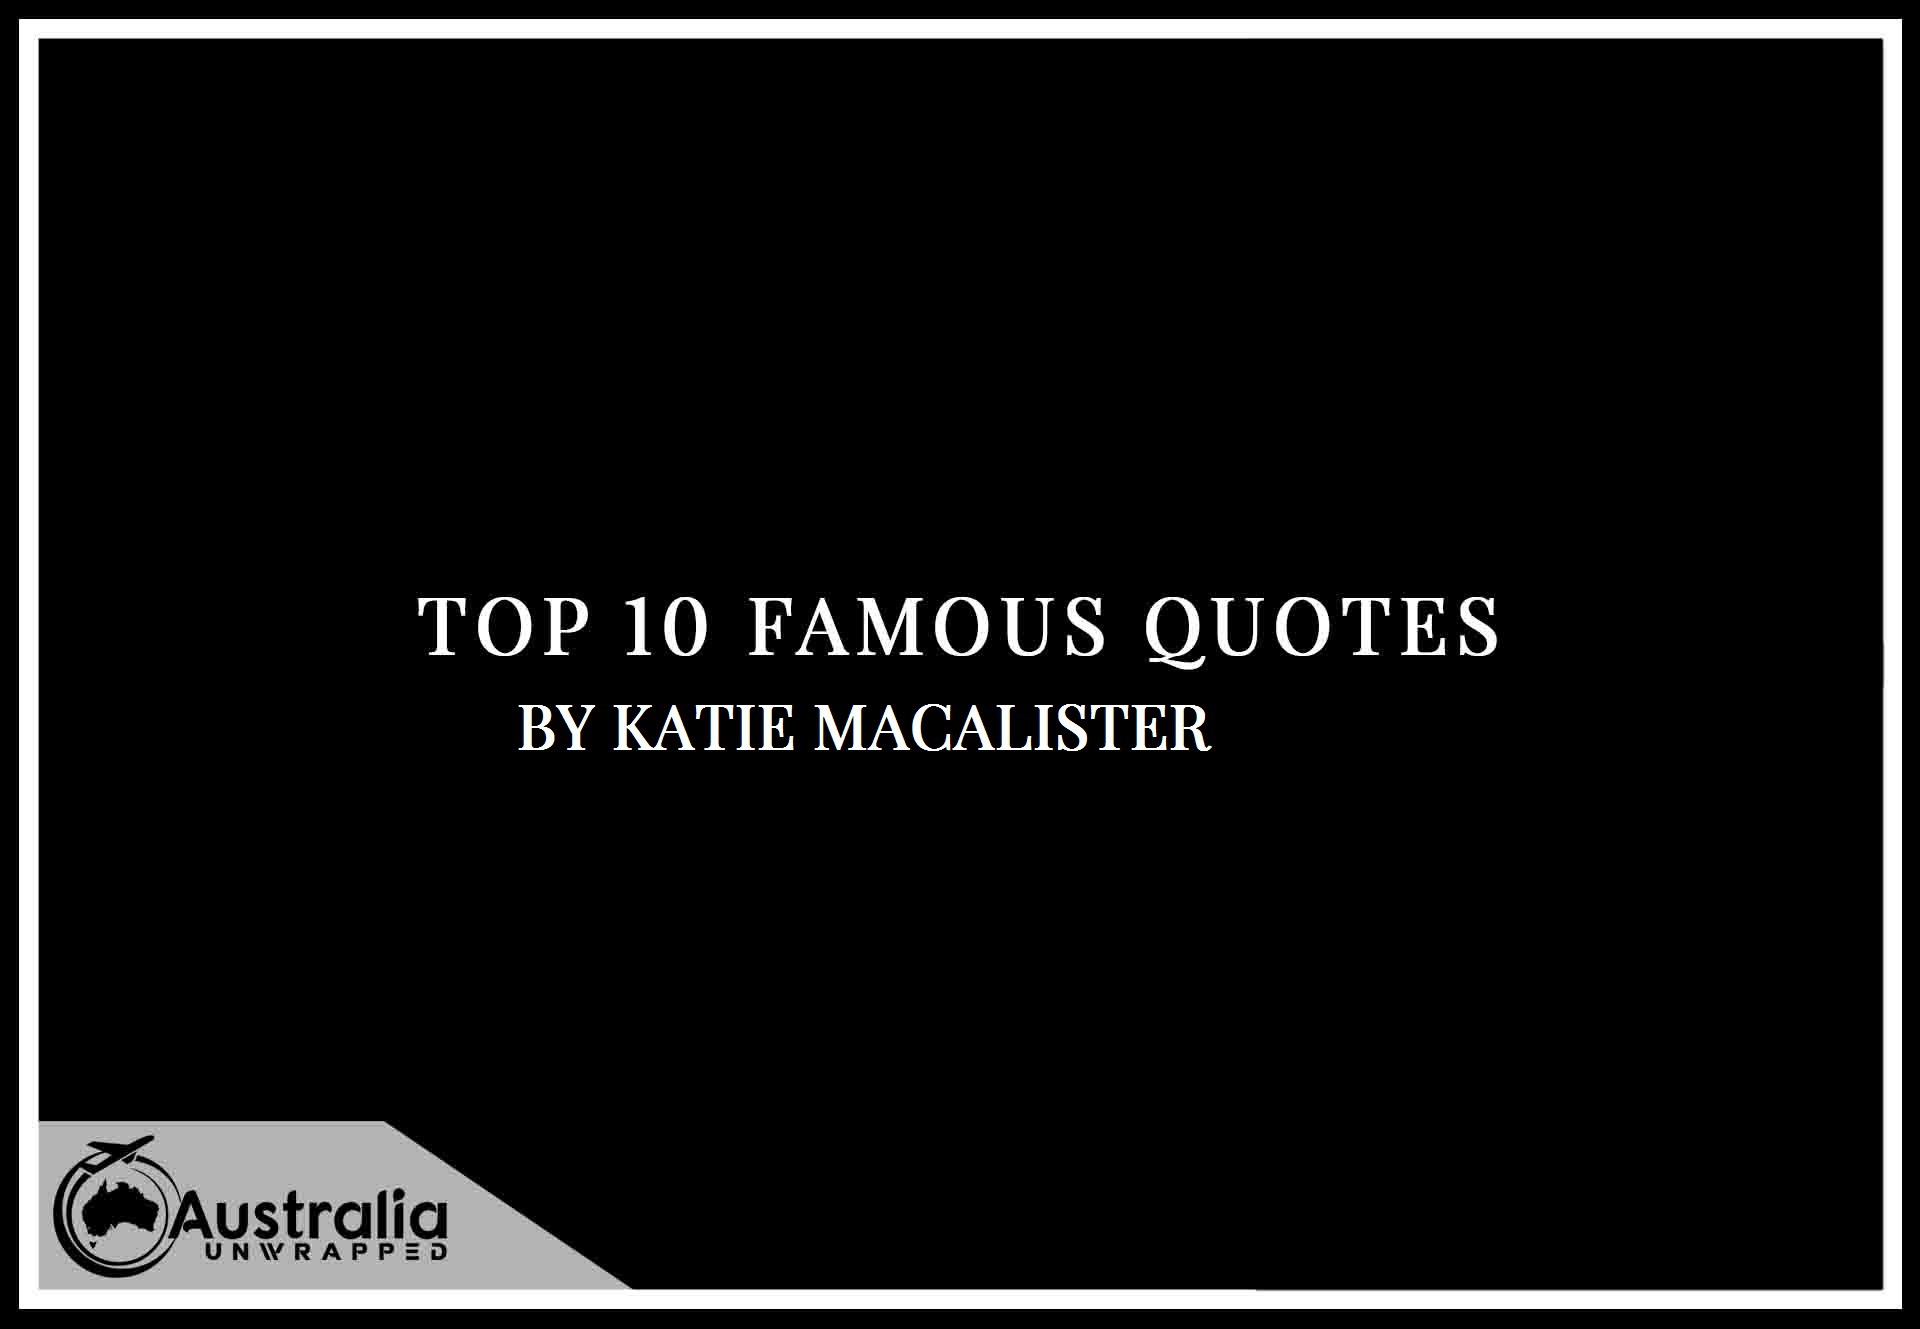 Katie MacAlister's Top 10 Popular and Famous Quotes